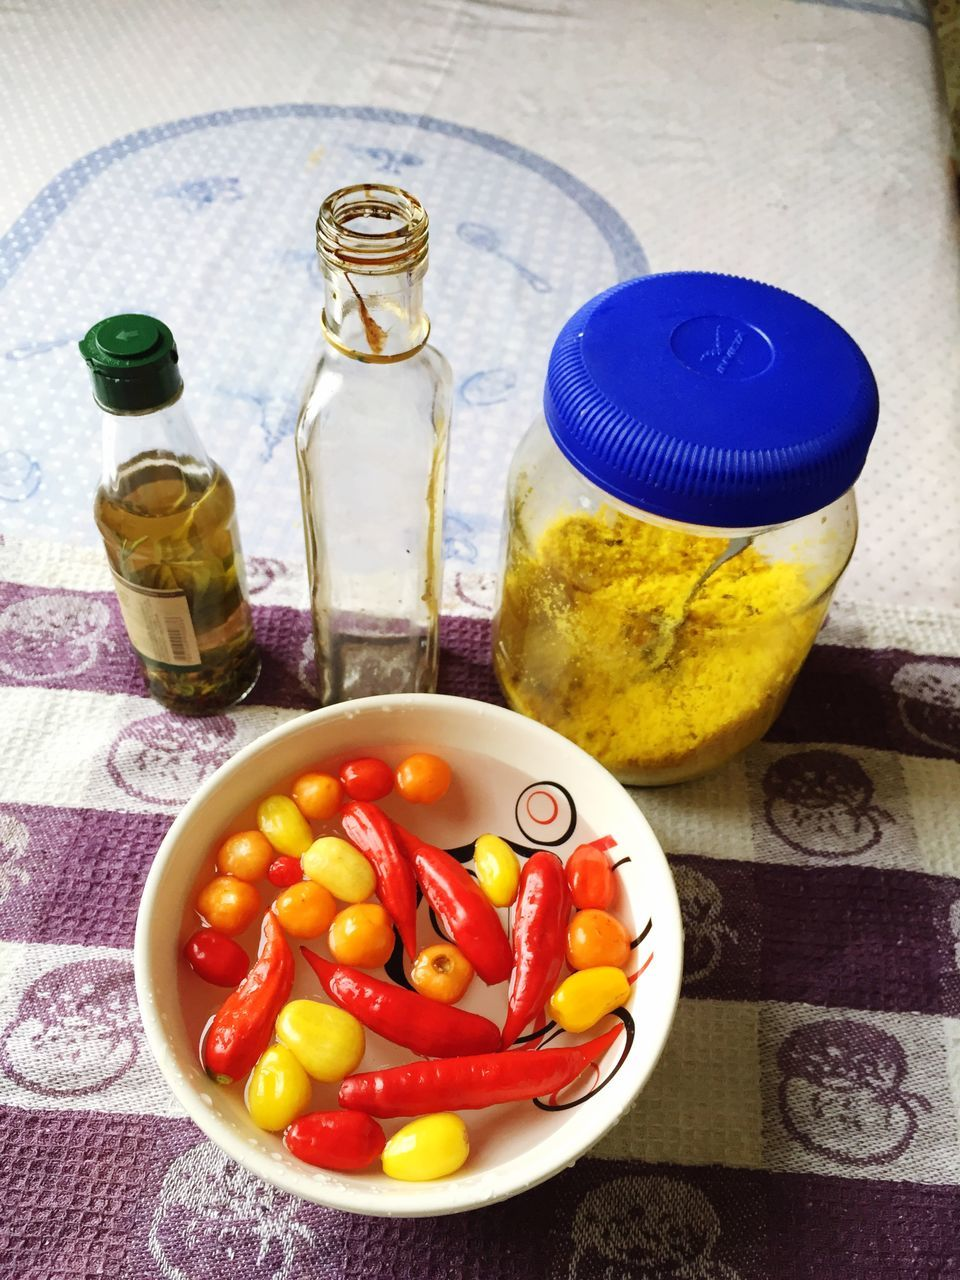 food and drink, bottle, table, food, olive oil, bowl, high angle view, indoors, no people, freshness, healthy eating, plate, close-up, day, ready-to-eat